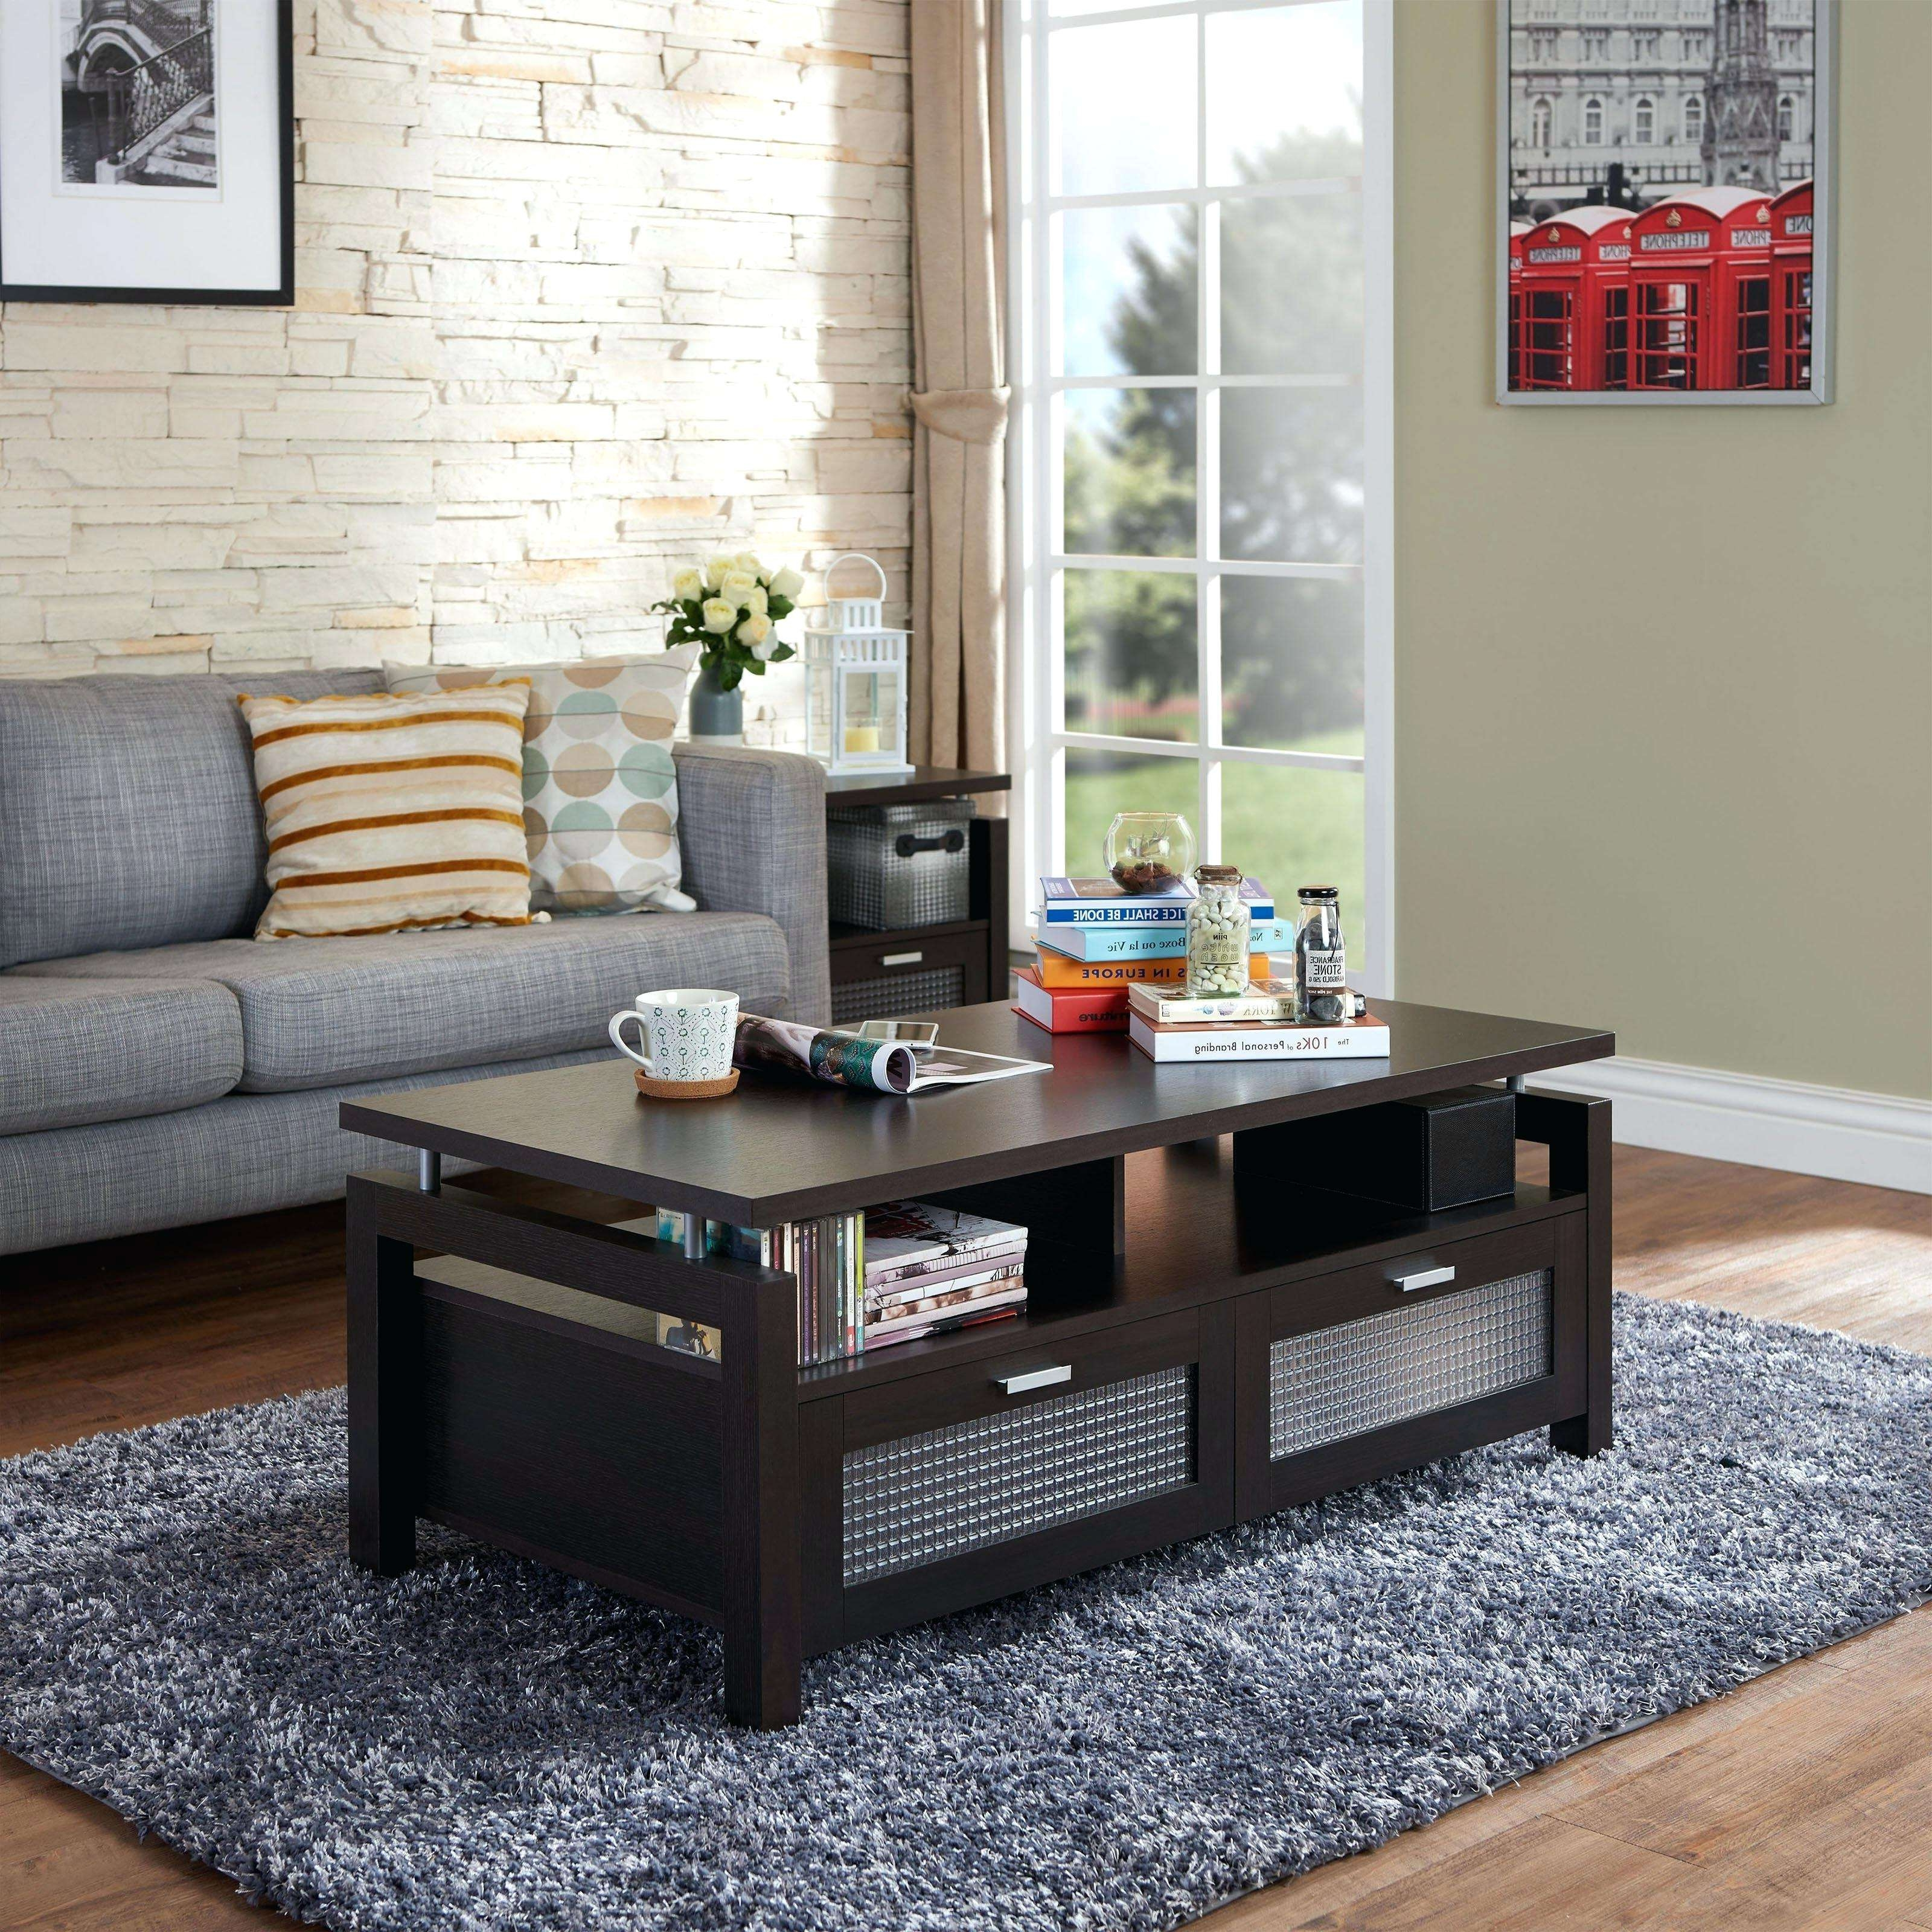 Brown Coffee Table Set Perfect For Interior Design Also Dark Brown Intended For Most Current Dark Brown Coffee Tables (View 17 of 20)